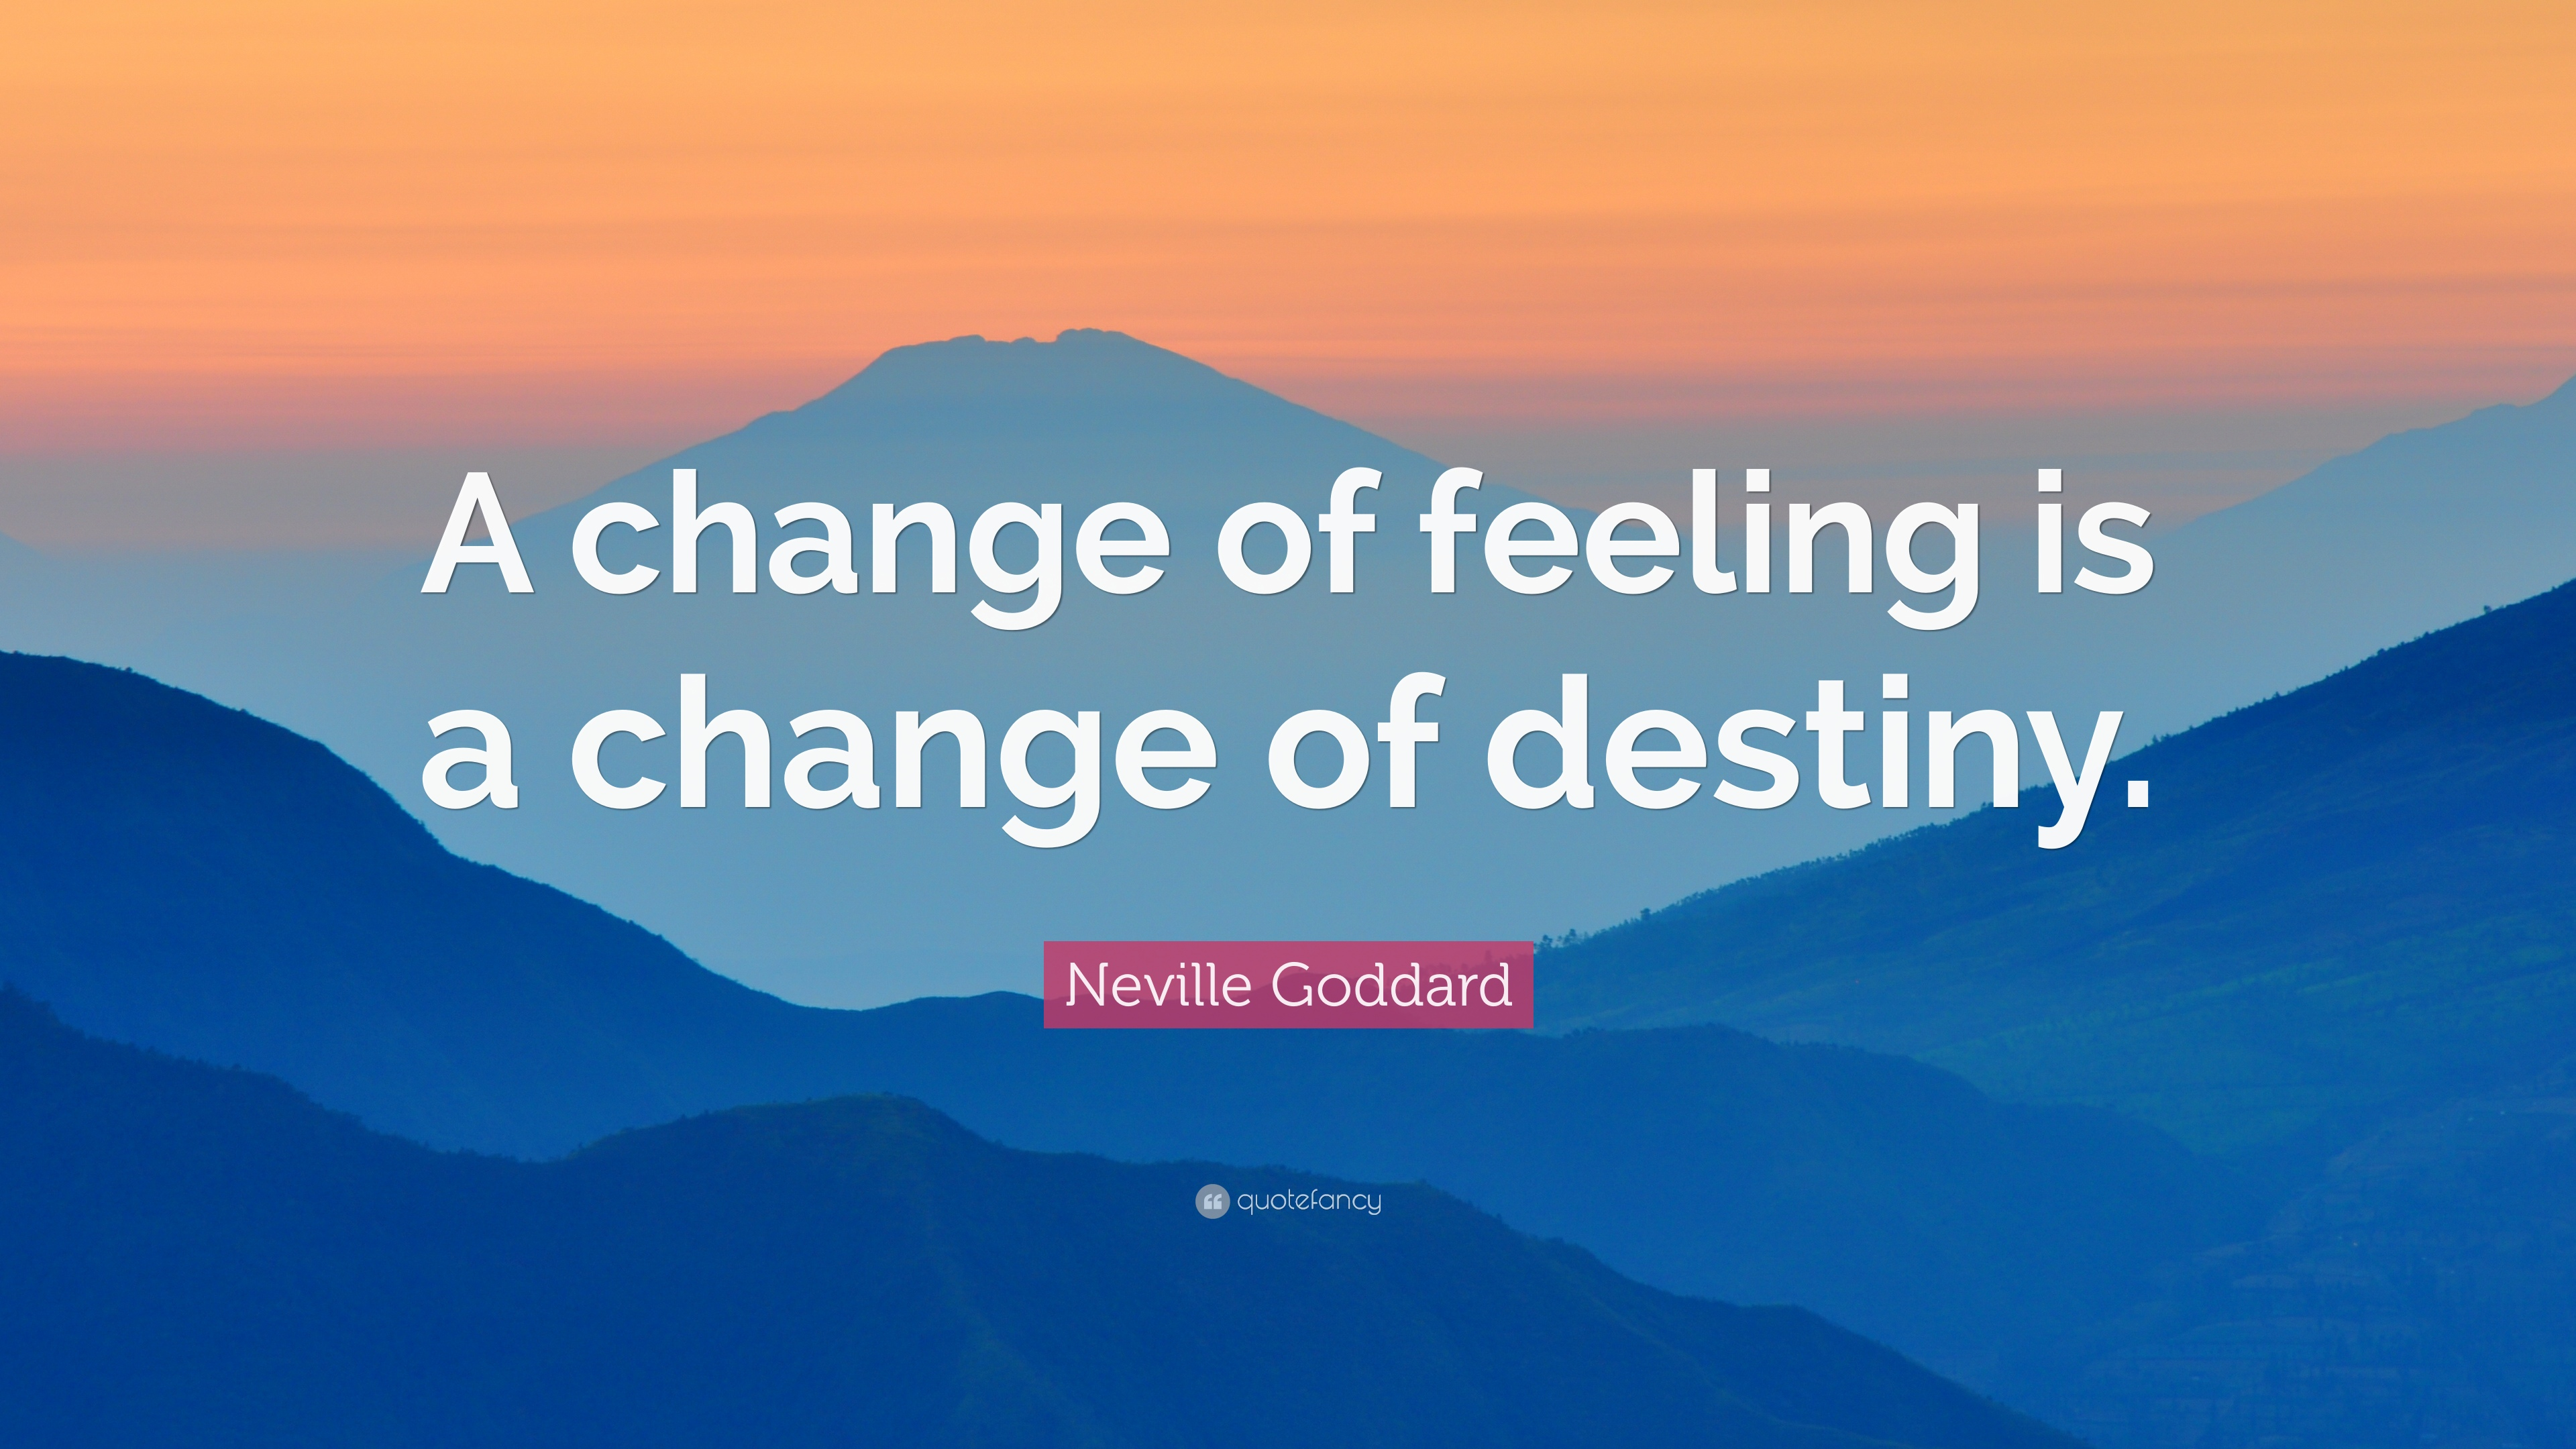 Quotes of the week that change feelings and thoughts 9